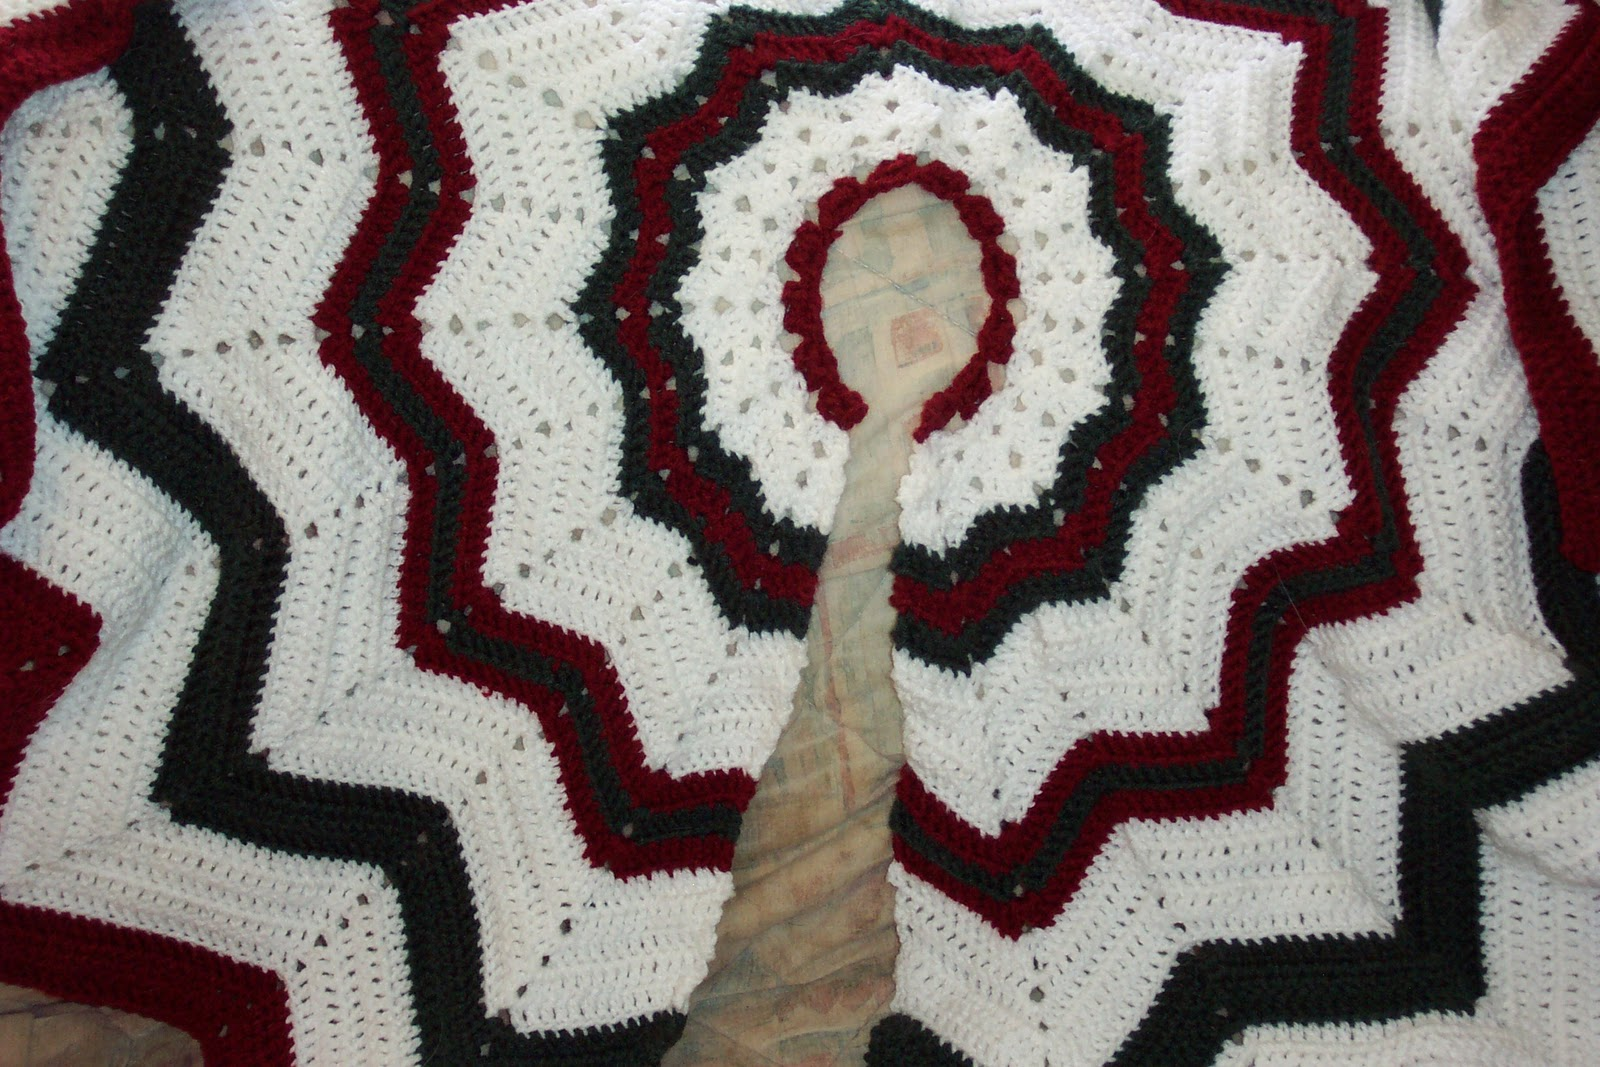 Knit Tree Skirt Pattern : SmoothFox Crochet and Knit: Dont forget the Christmas Tree Skirt Free Pa...